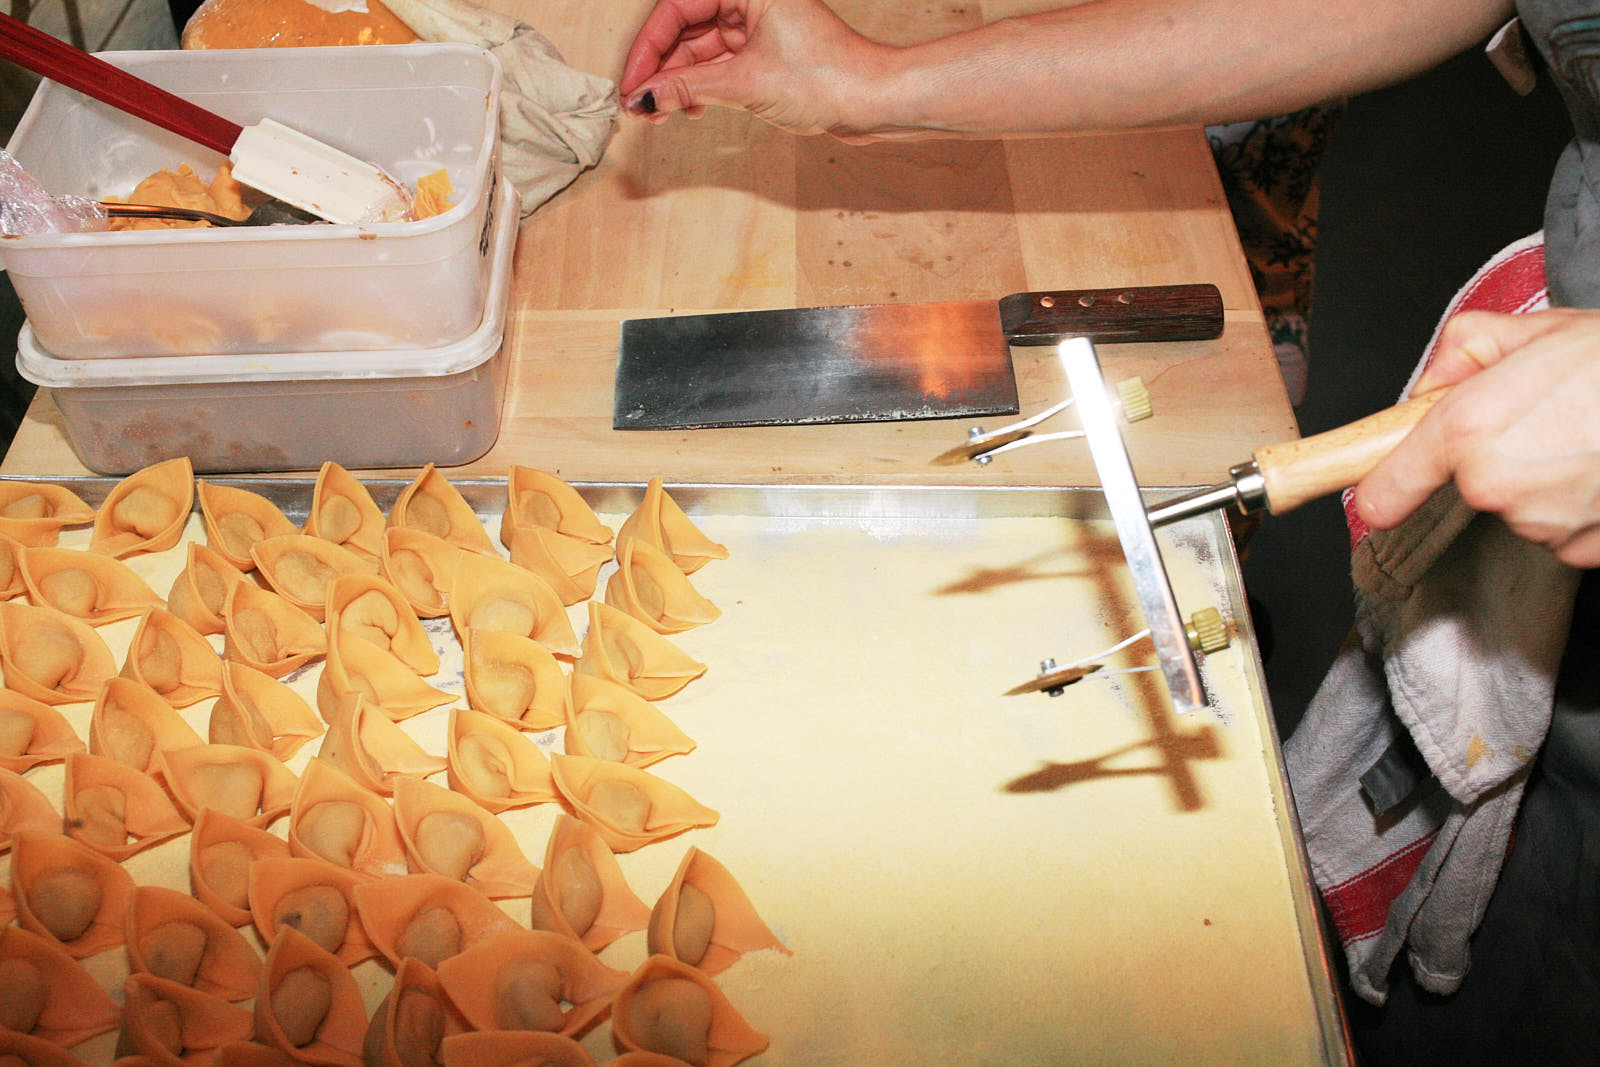 The pasta production process that hasn't stopped at Ombra since March